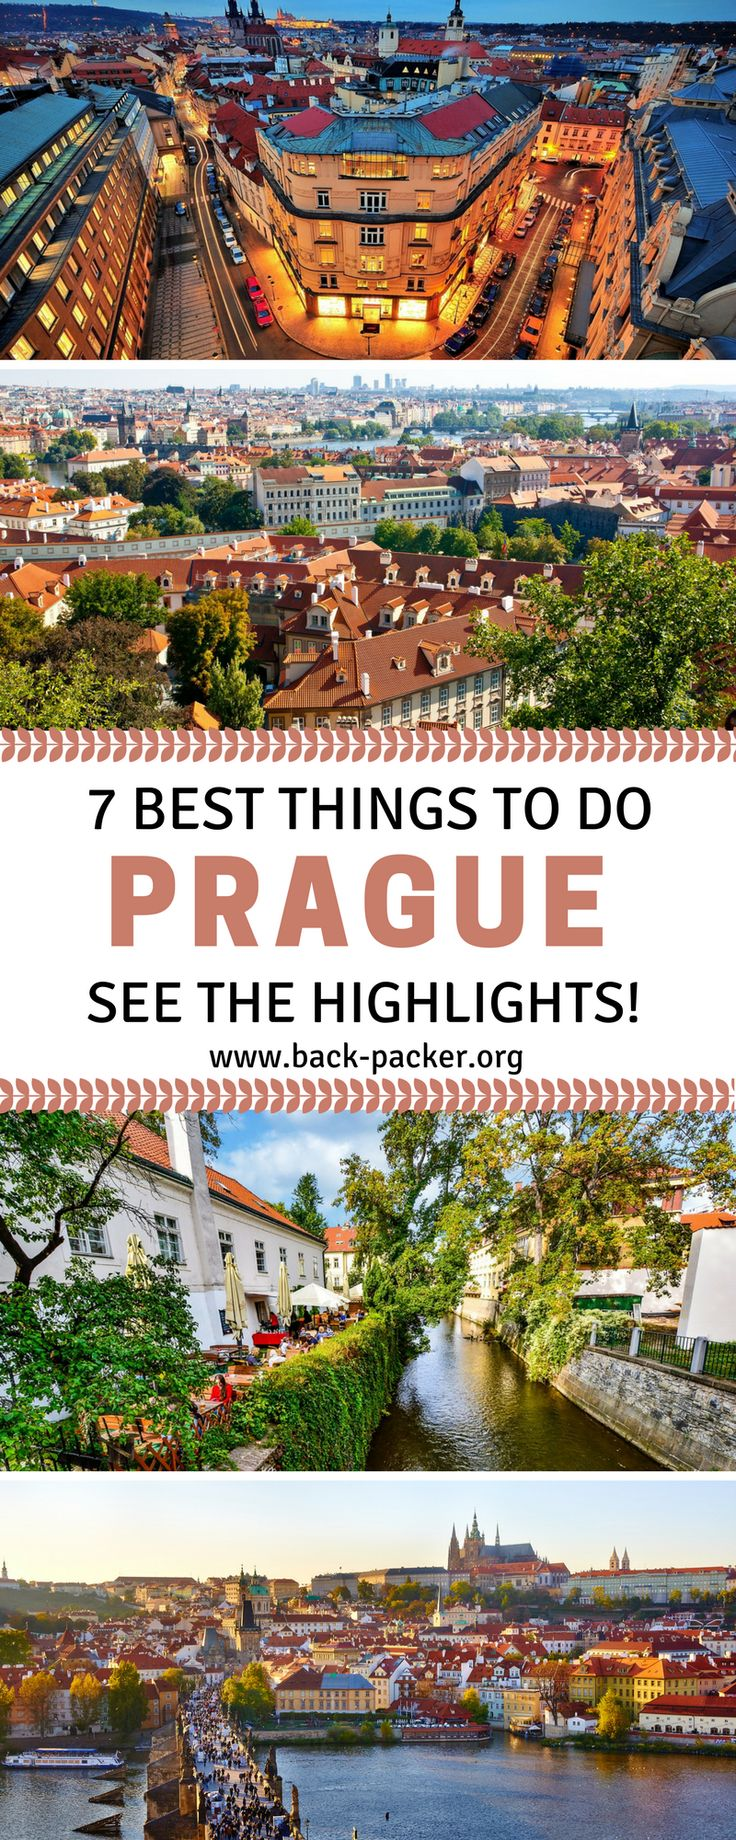 7 of the best things to do when visiting Prague. From Prague Castle to Old Town, no trip to Prague would be complete without experiencing these city highlights. Travel in the Czech Republic, Eastern Europe. | Back-packer.org #Prague #EastEurope